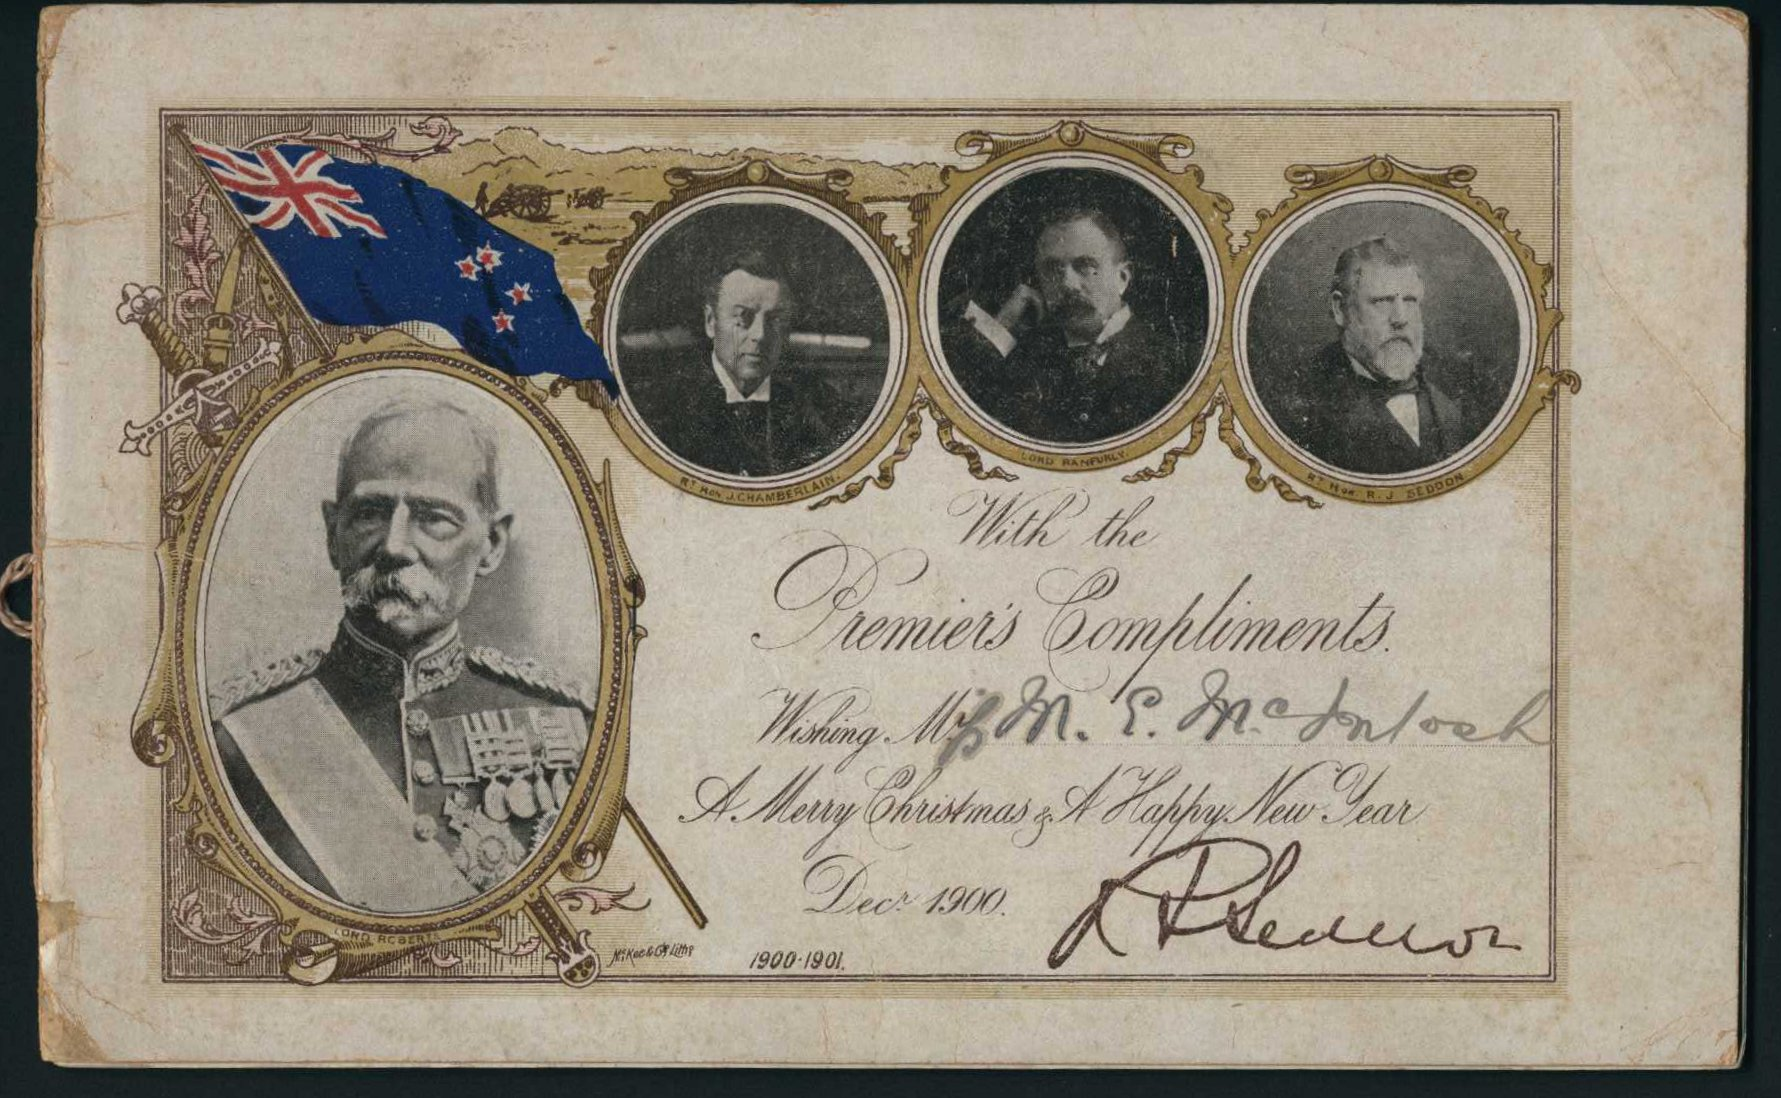 Christmas cards sent by the Premier, R.J. Seddon